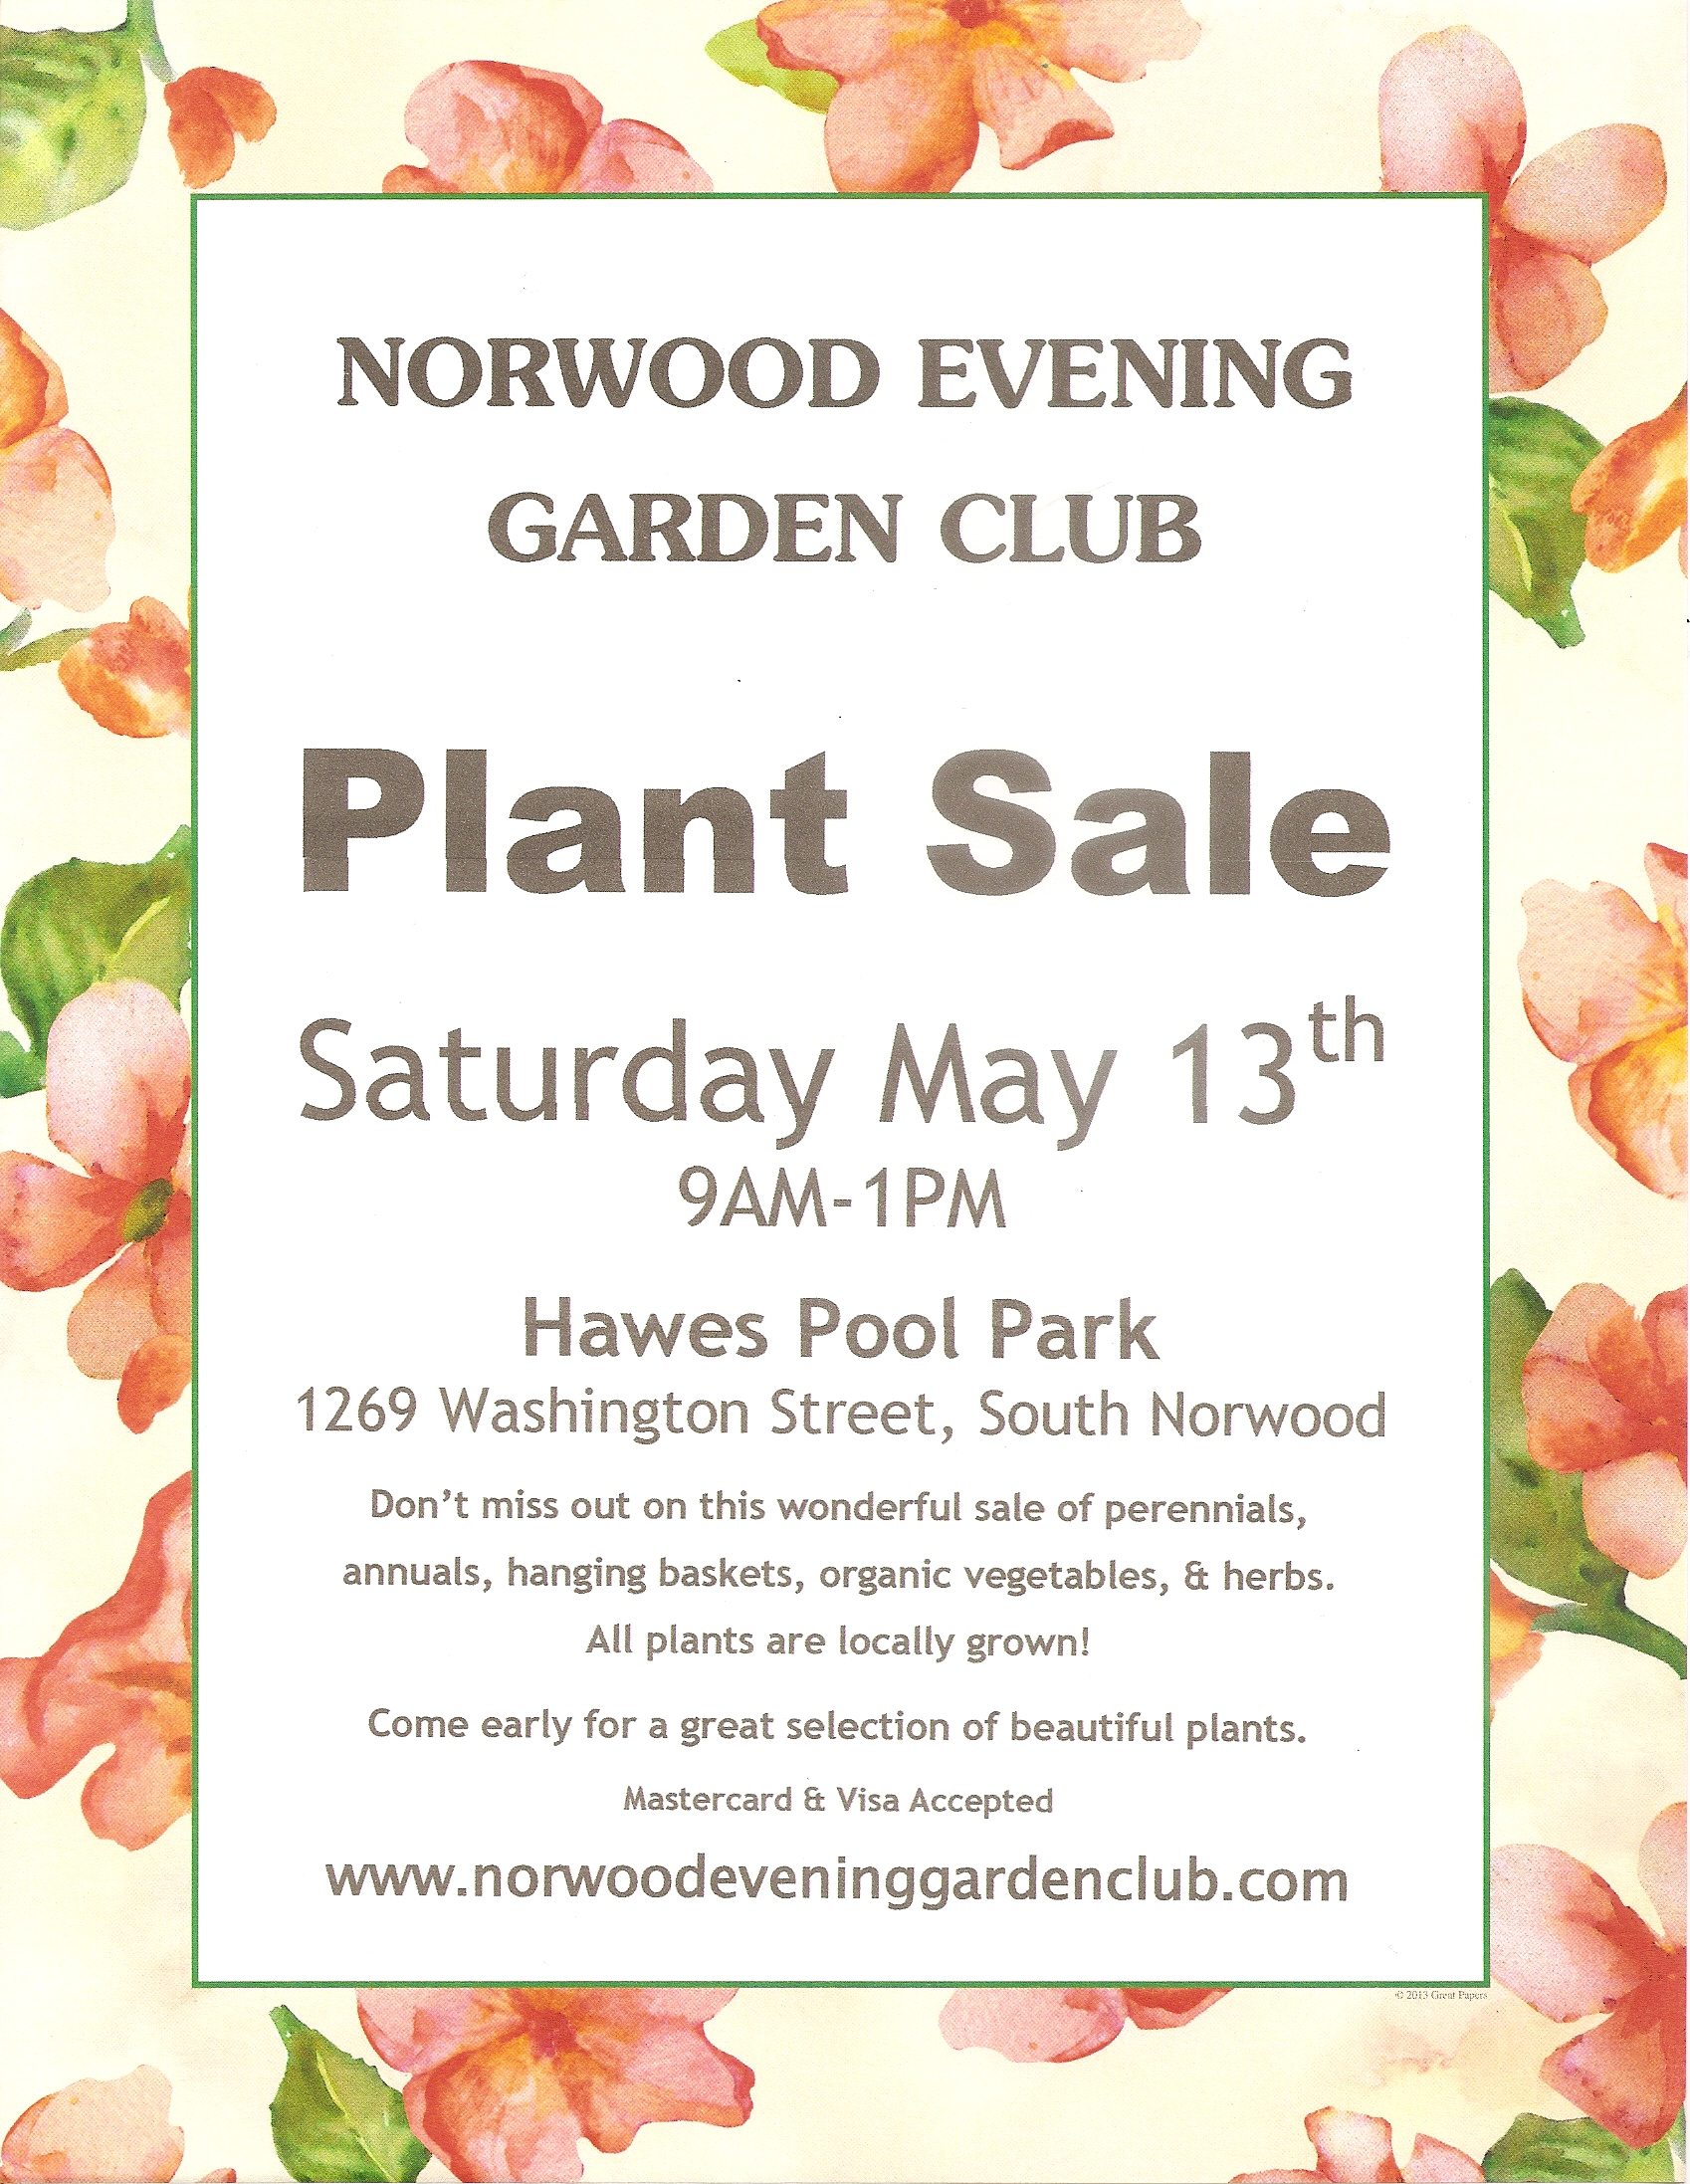 Mail in Pre order form. Norwood Evening Garden Club